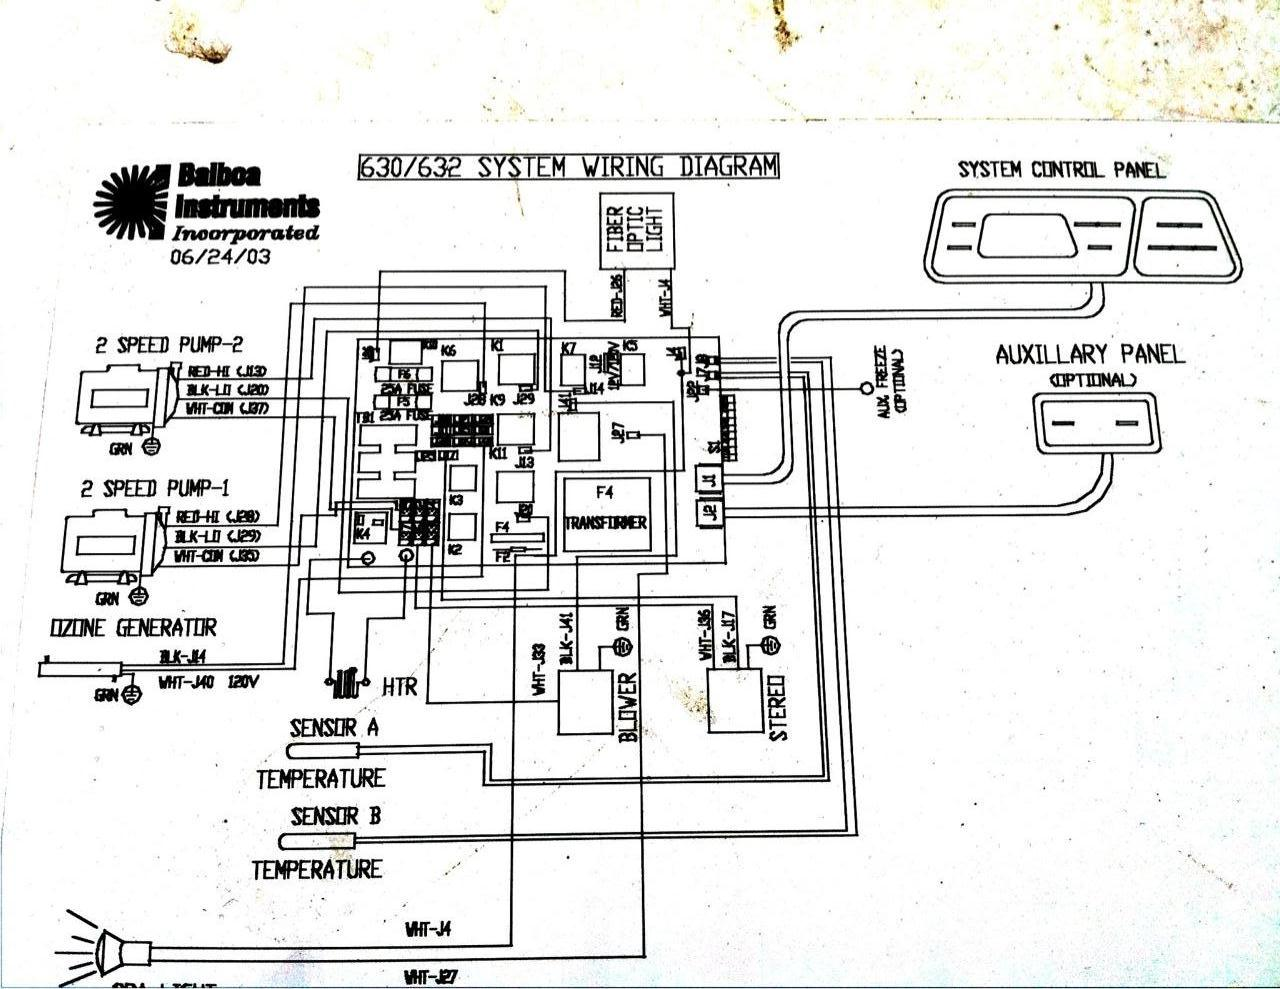 Spa Motor Wiring Diagram Auto Electrical Emerson 1081 230v I Have A 2003 Coleman Spas Model 482dlx It Has Two Motors